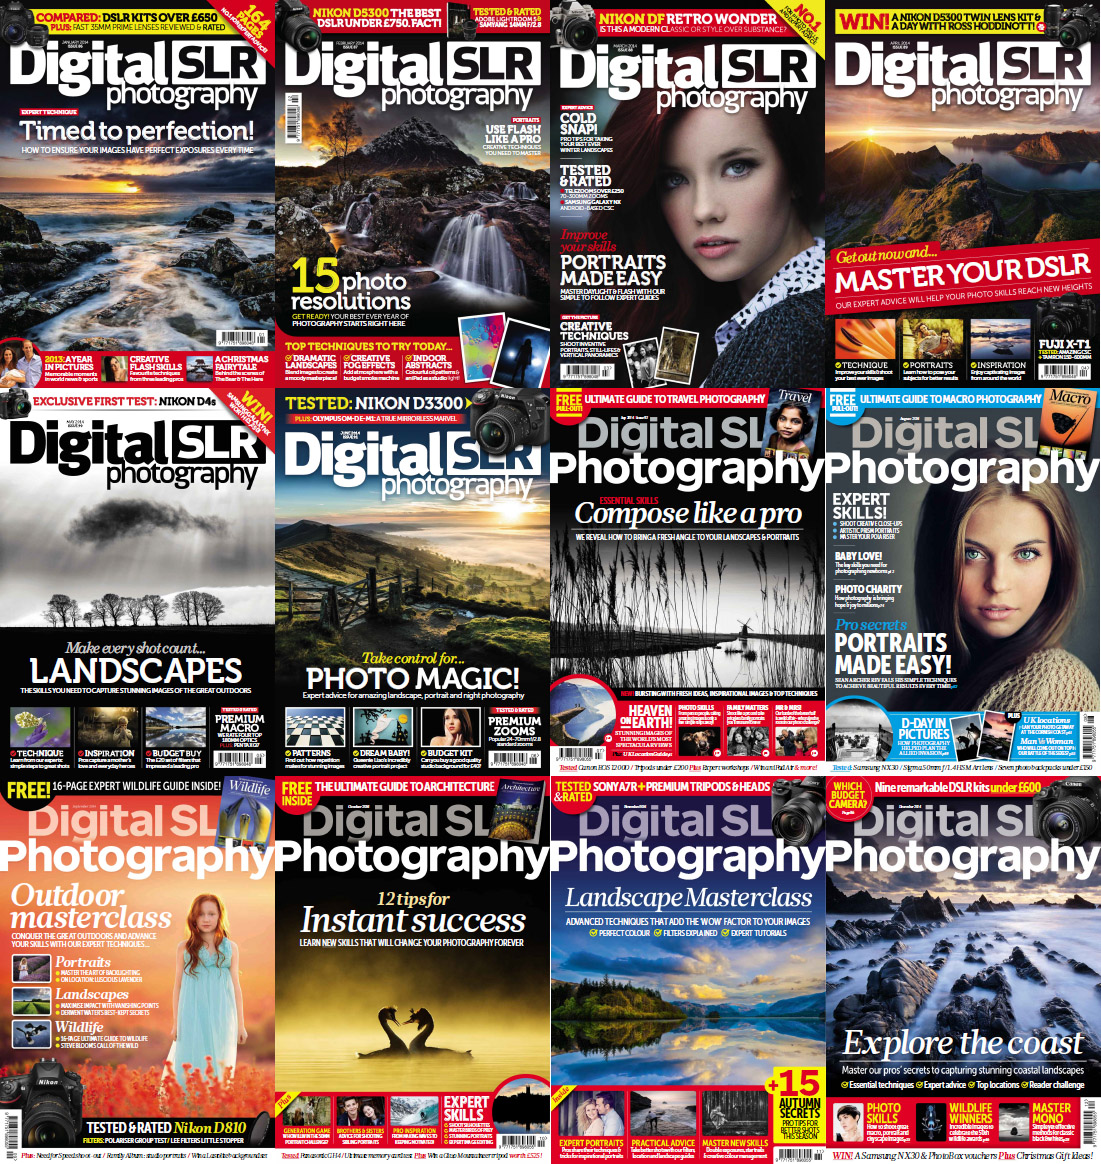 Digital SLR Photography Magazine - Full Year 2014 Issues Collection free download